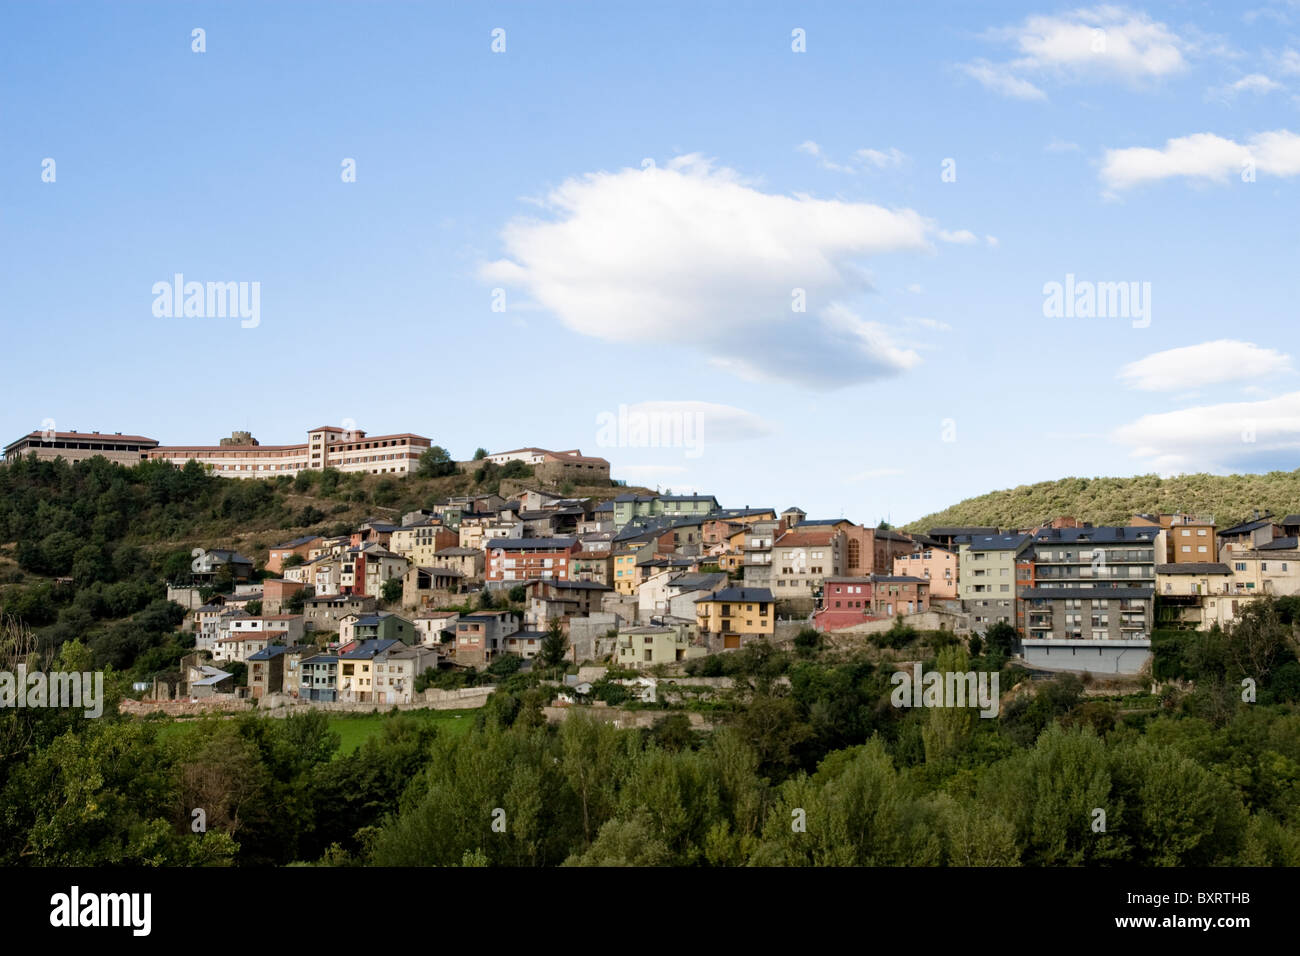 Spain, Catalan Pyrenees, La Seu d'Urgell, View of clouds above village - Stock Image